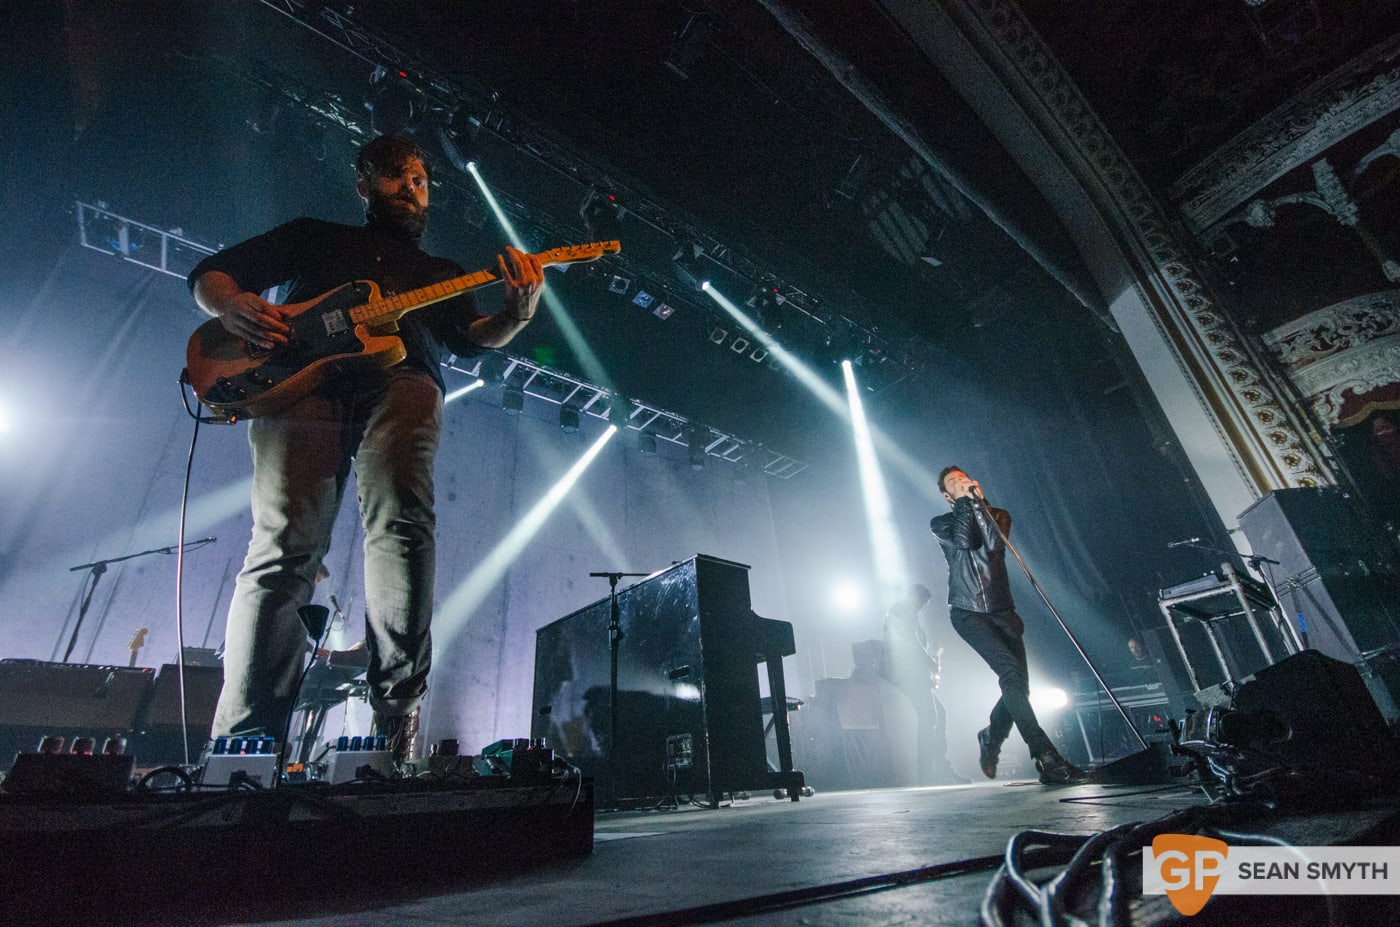 editors-at-the-olympia-theatre-by-sean-smyth-10-10-15-26-of-28_21469301813_o